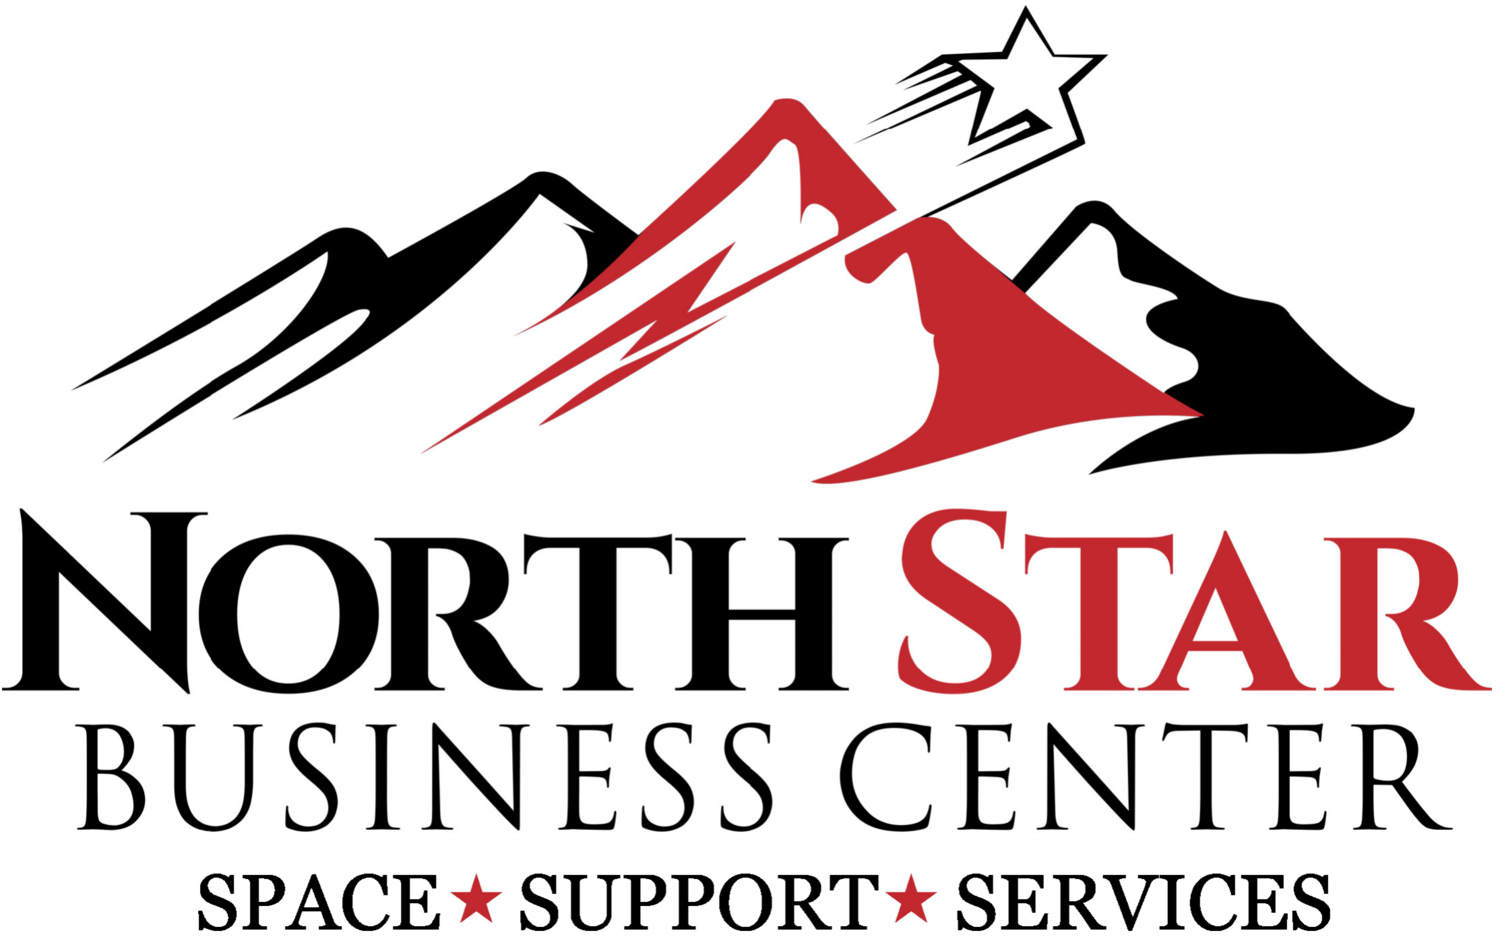 North Star Business Center